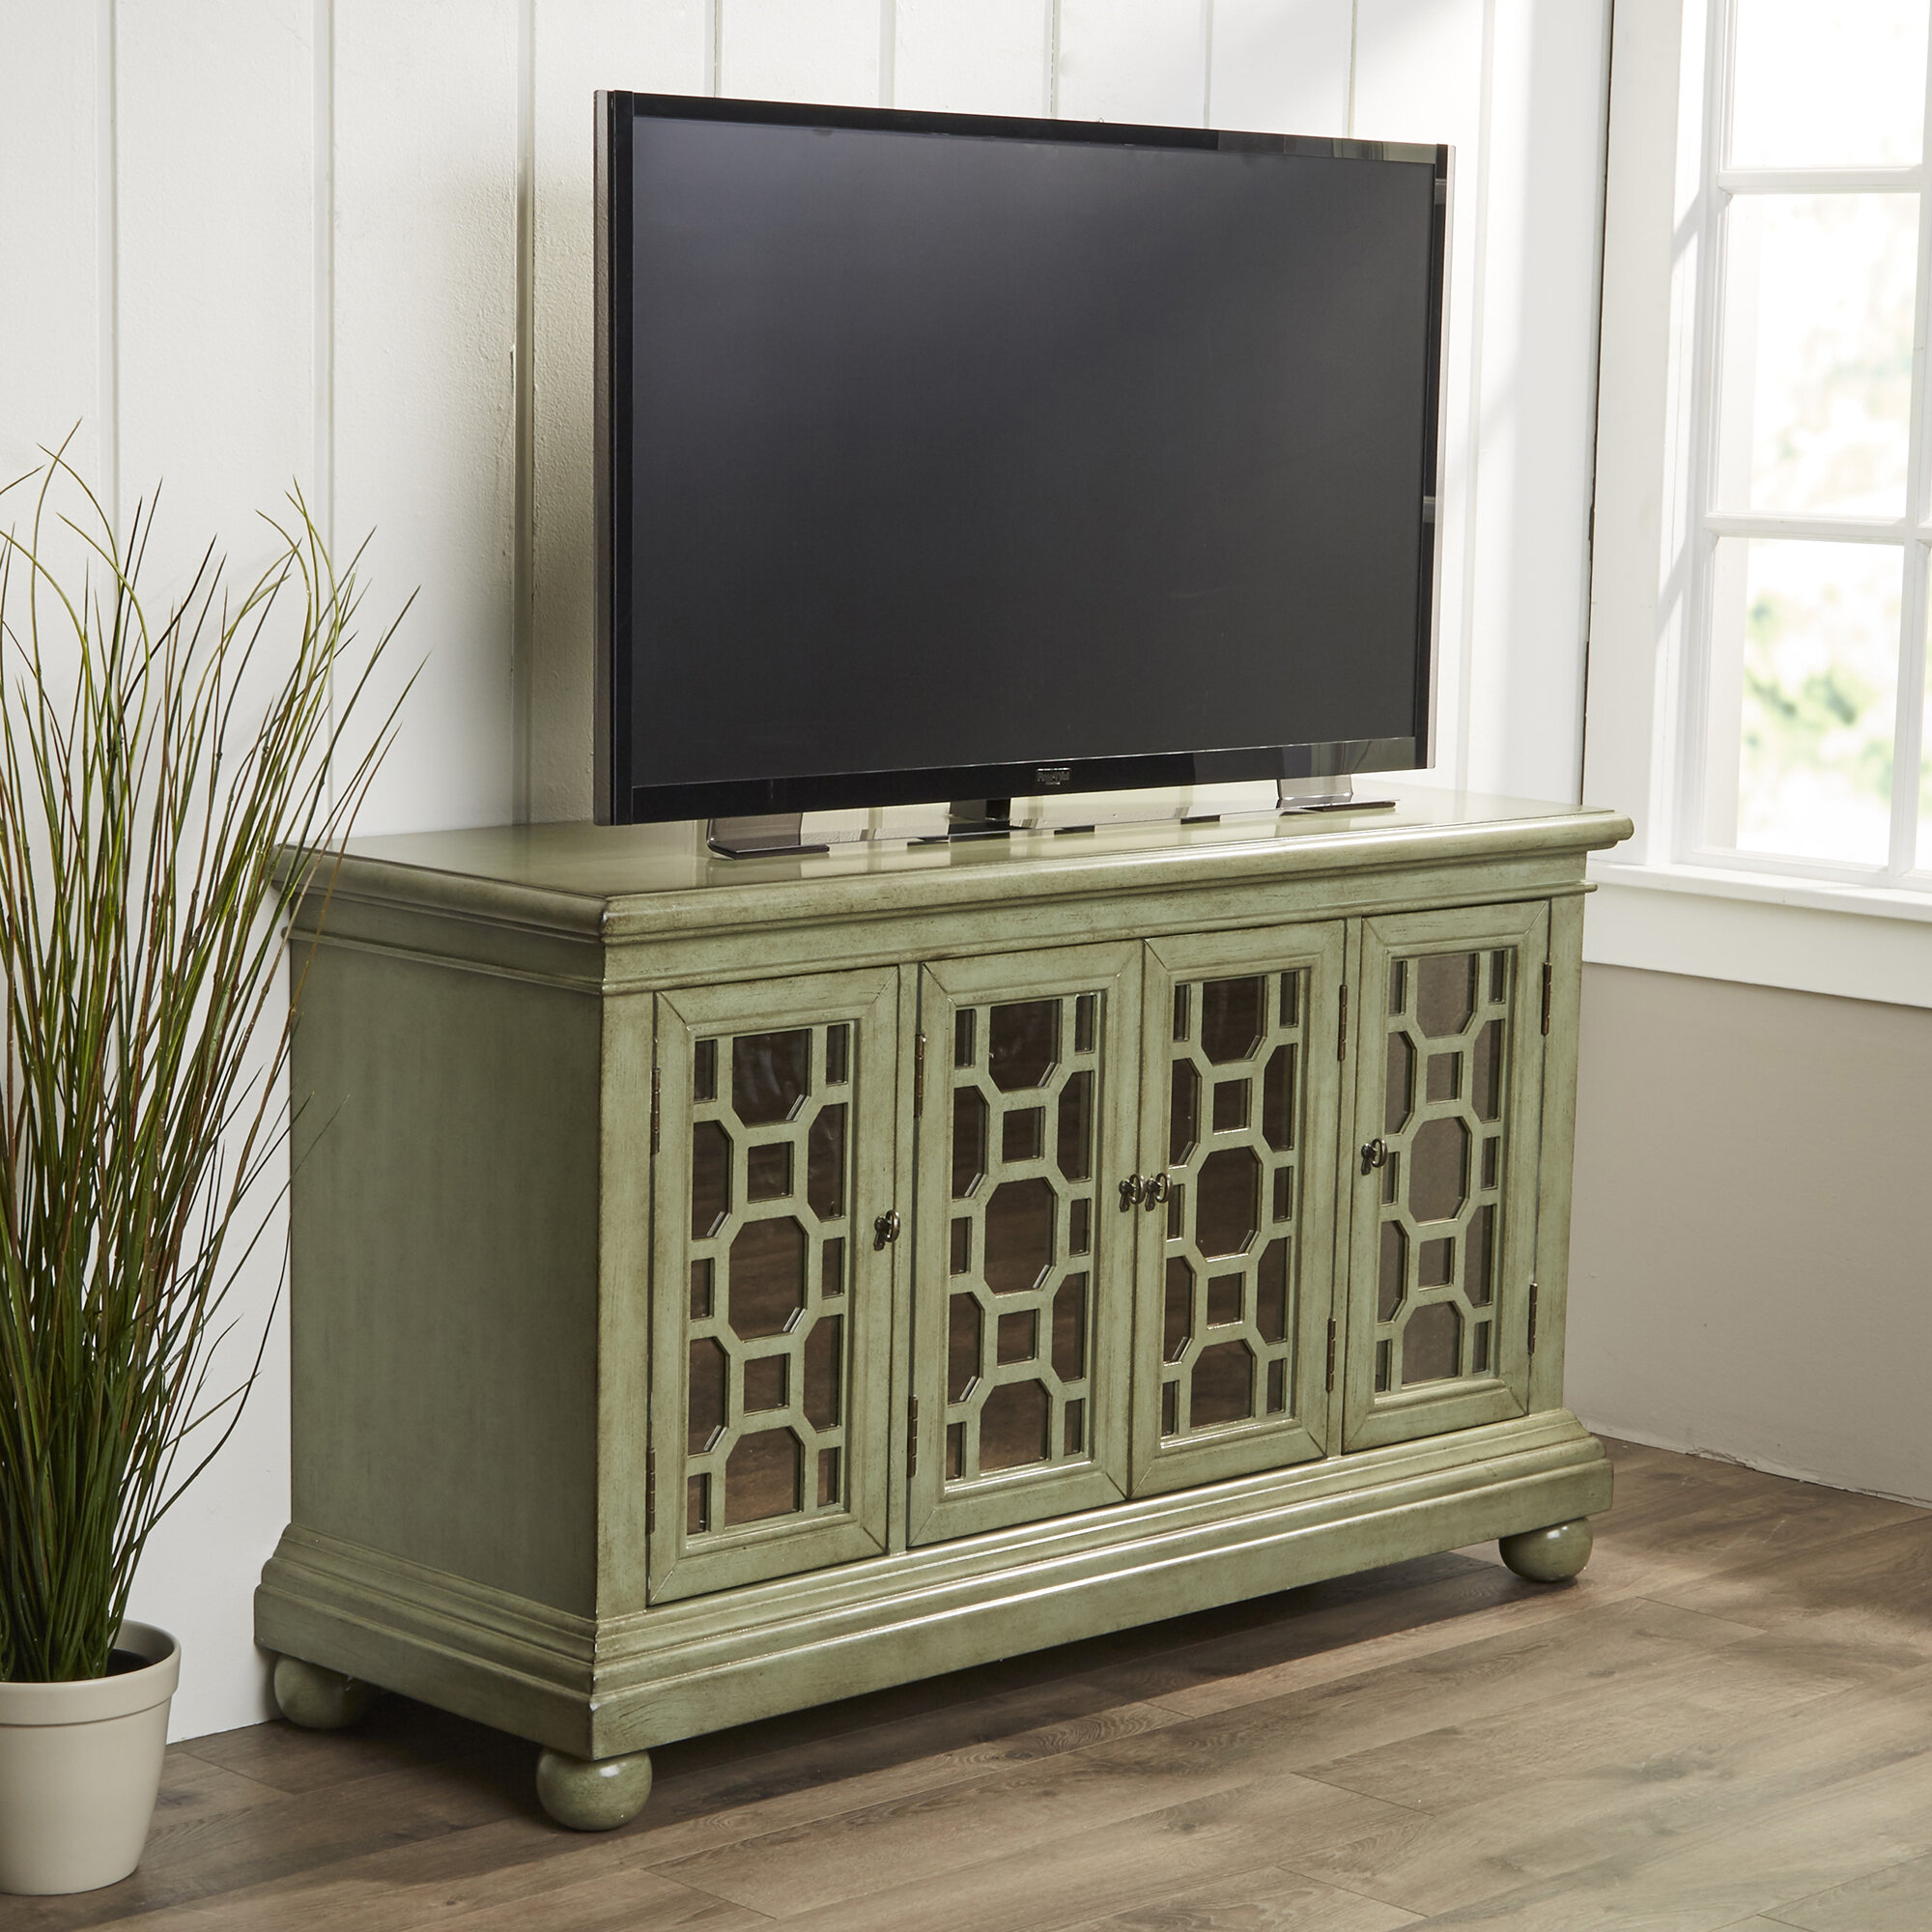 """Sundown Tv Stand For Tvs Up To 48"""" With Regard To Parmelee Tv Stands For Tvs Up To 65"""" (View 14 of 30)"""